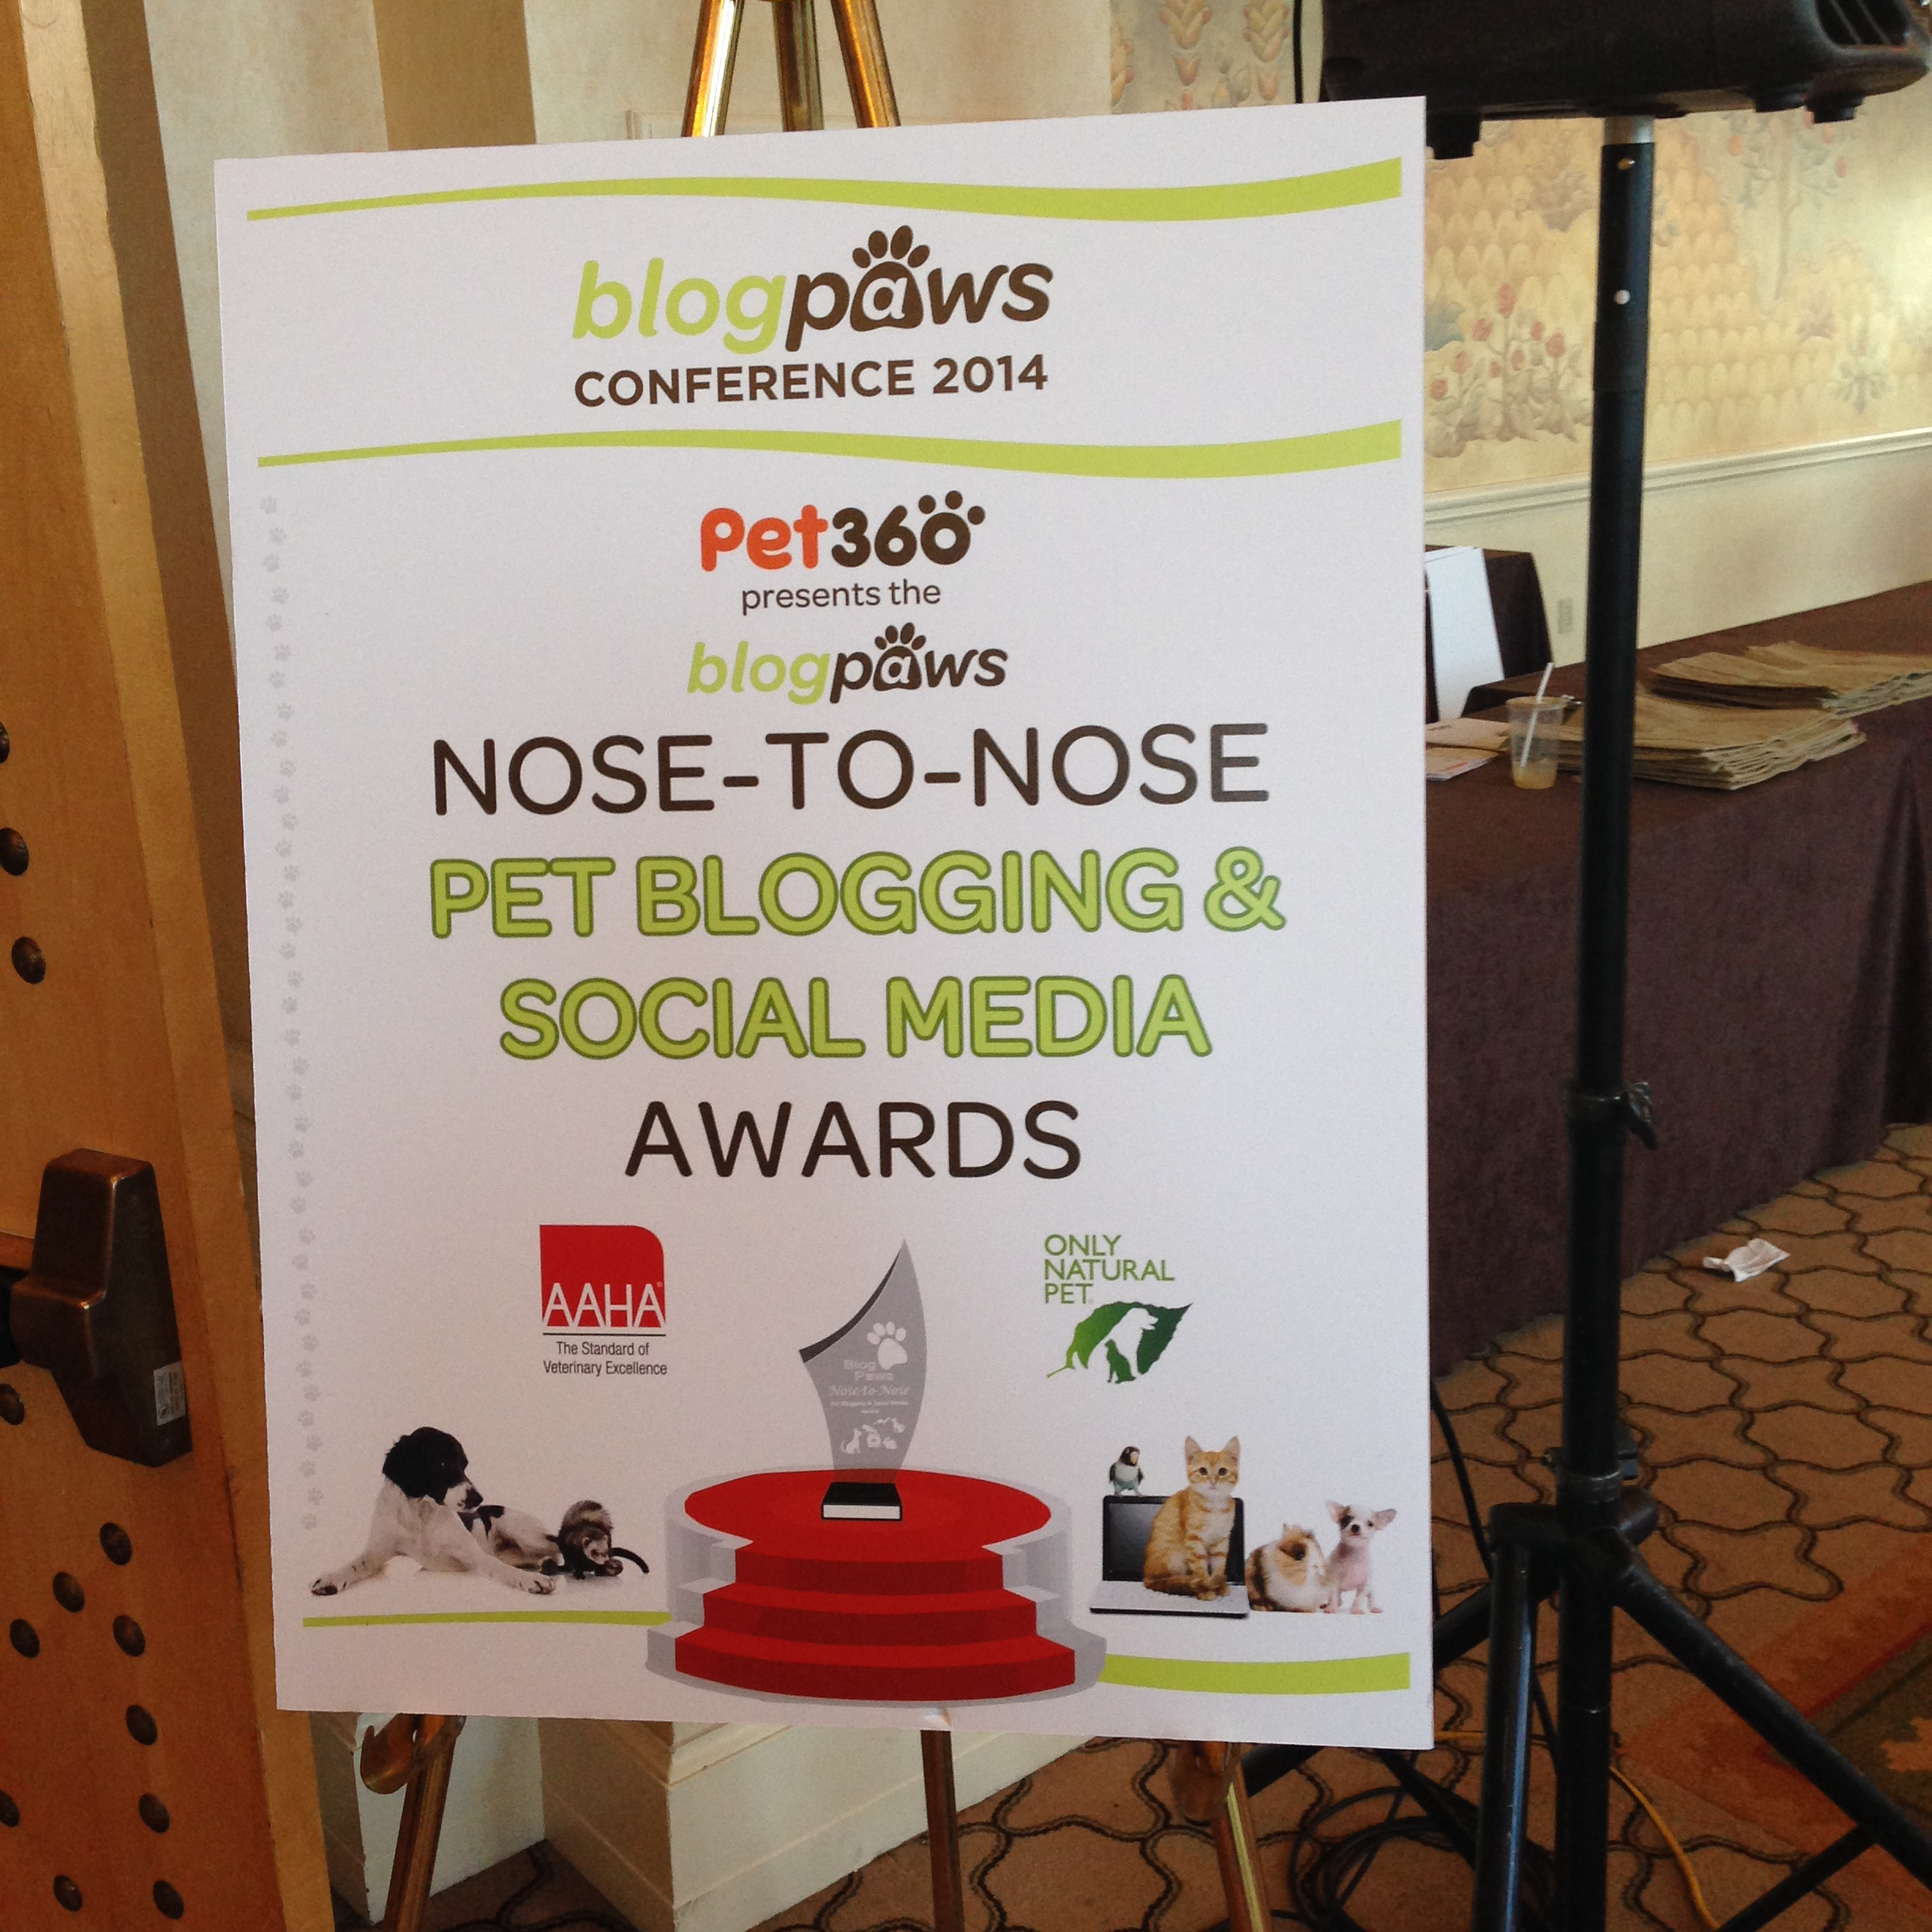 blogpaws awards